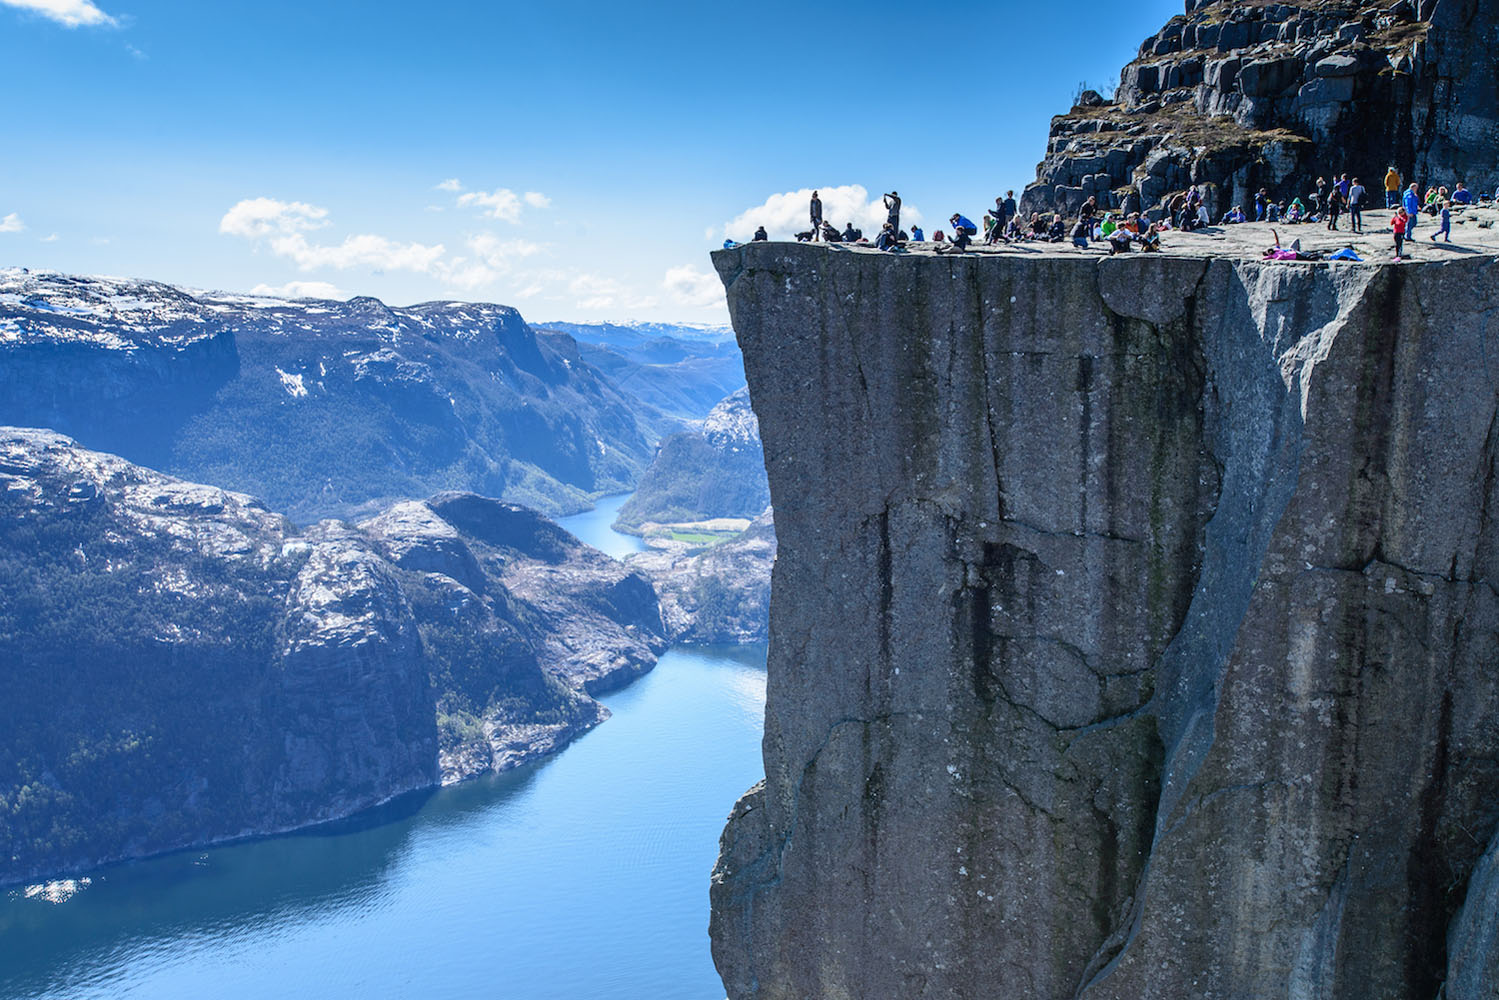 People hiking on the cliffs of Norway